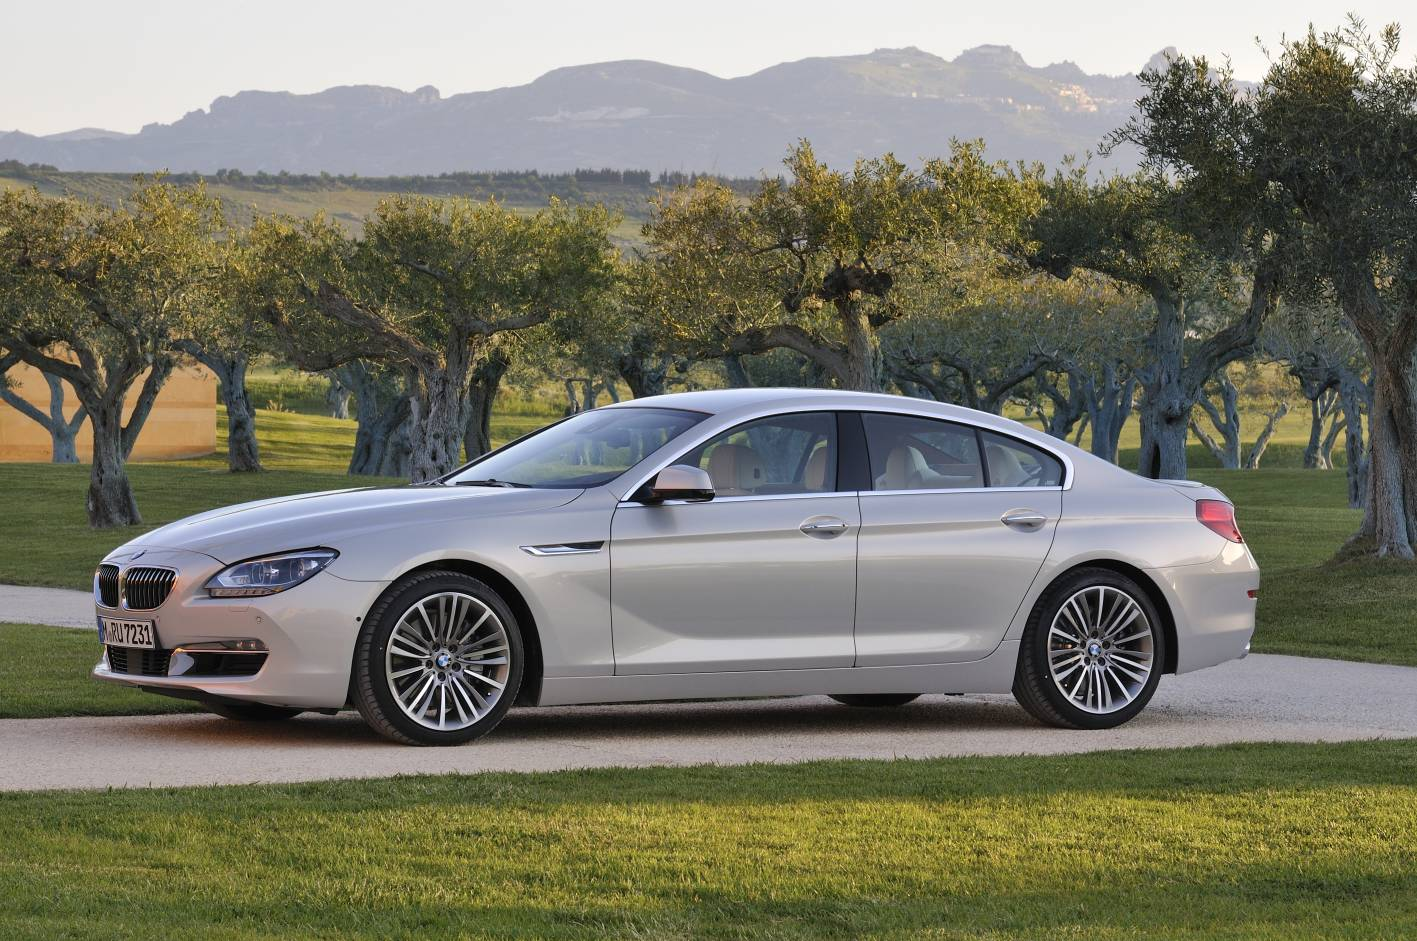 Bmw cars news 6 series gran coup on sale - 6 series gran coupe for sale ...